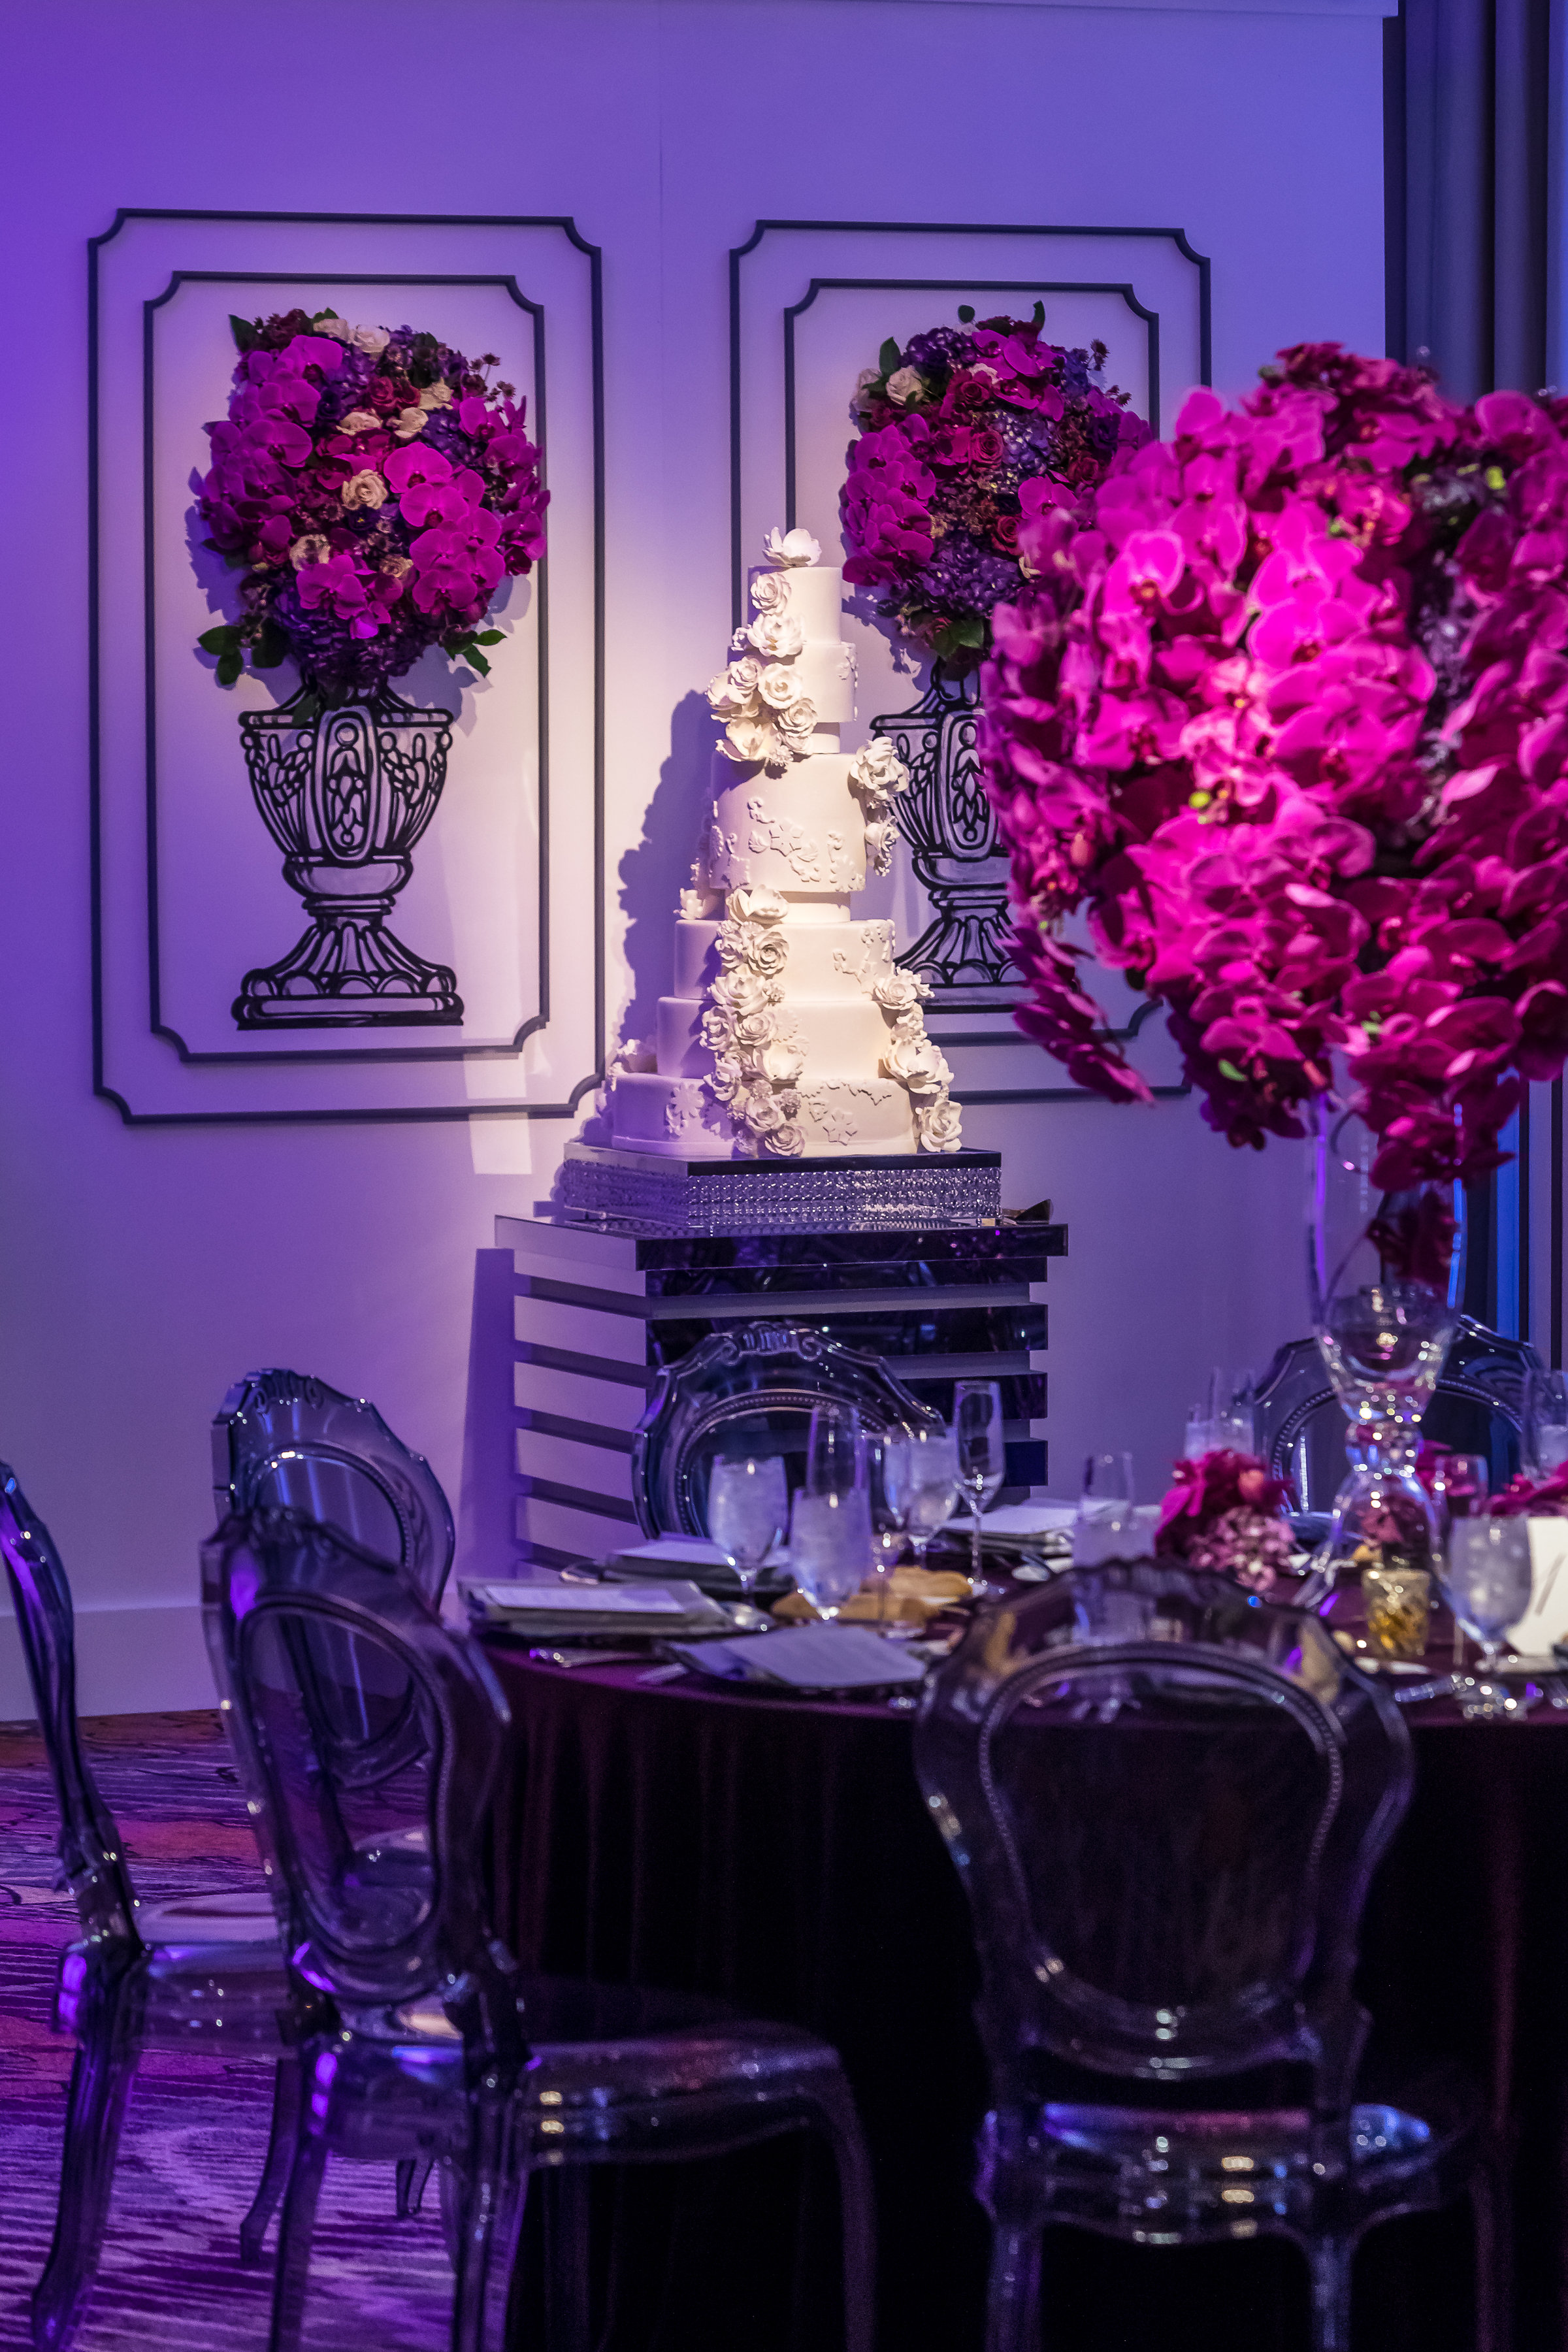 White on white wedding cake in a purple wedding reception.    Wedding Planner: Andrea Eppolito Events  | Photography  Brian Leahy  | Venue & Catering: Mandarin Oriental / Waldorf Astoria | Floral & Decor: Destinations by Design  | Lighting: LED Unplugged   | Hair & Make Up: Amelia C & Co